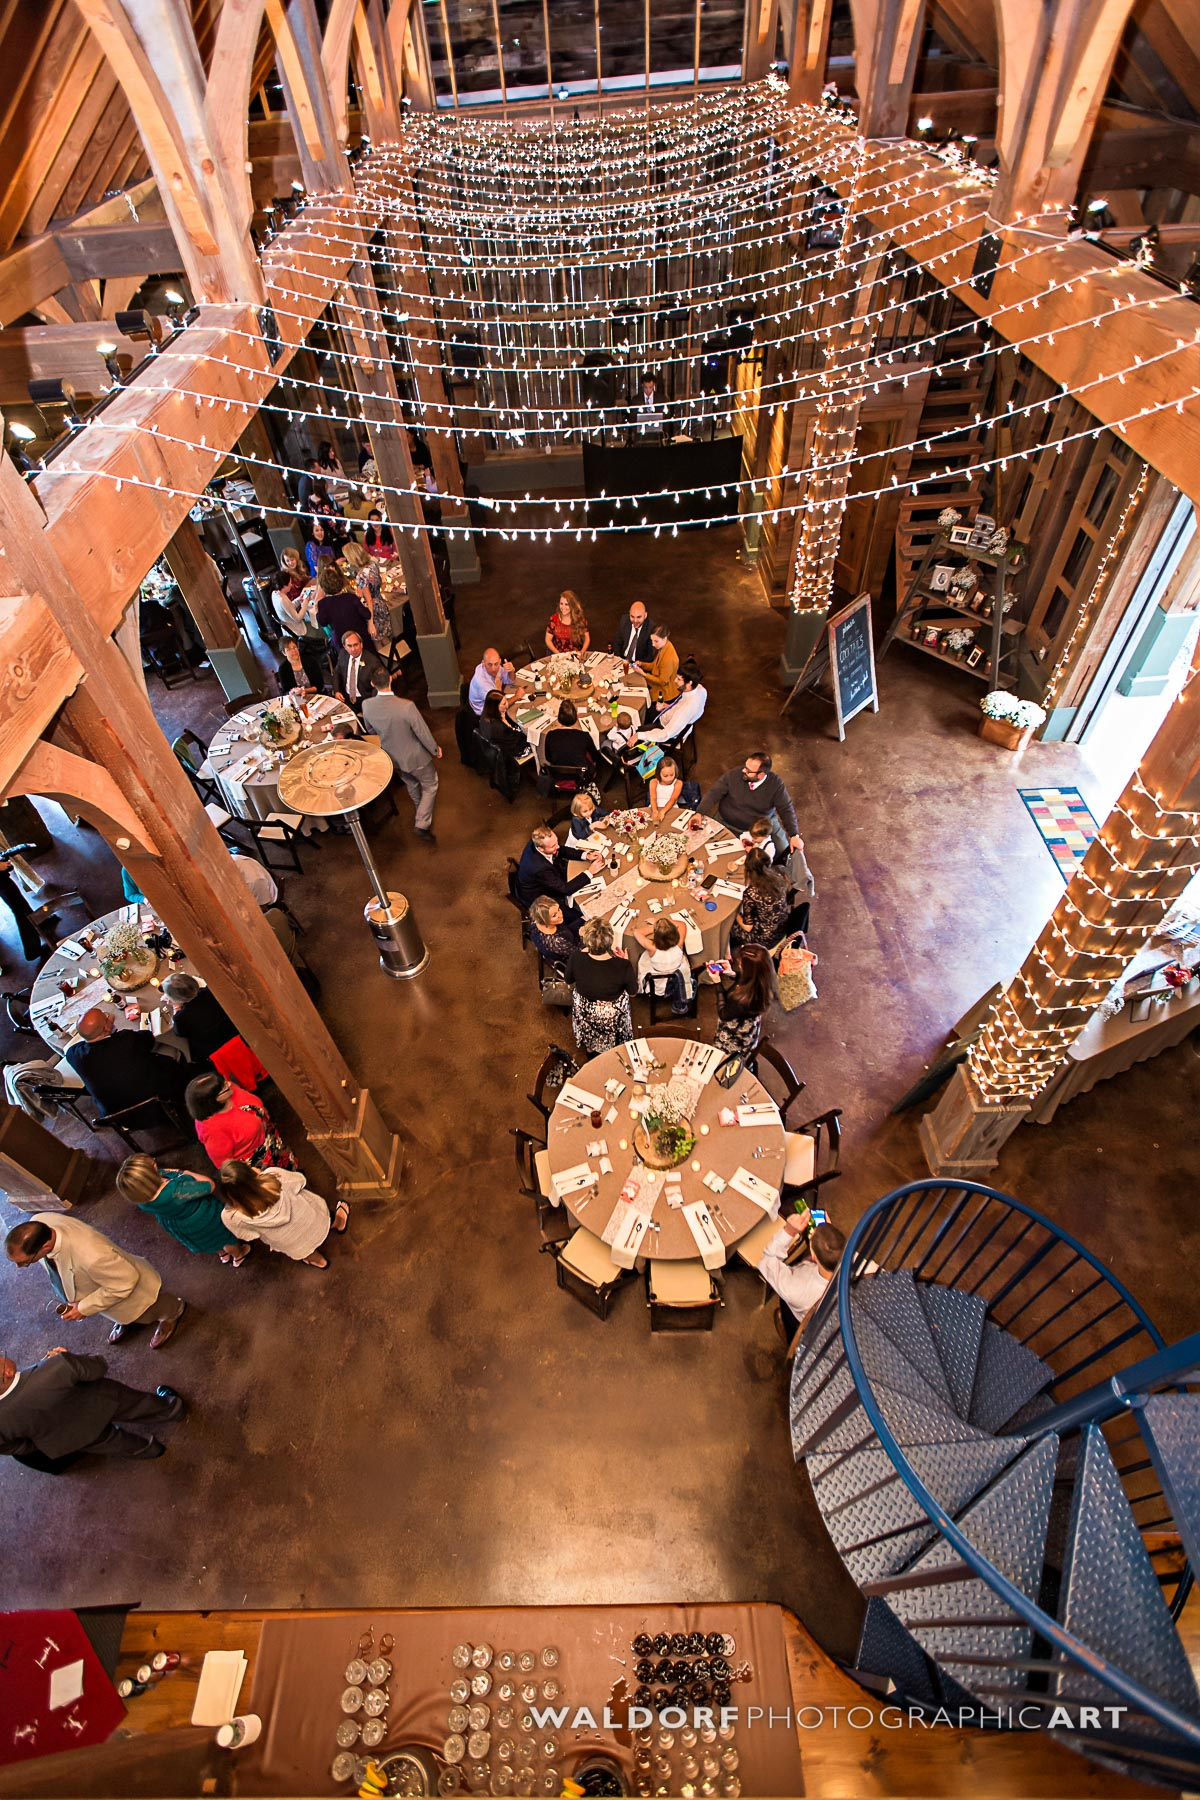 The reception area in the barn from above at Pure Water Farm barn wedding near Gatlinburg.